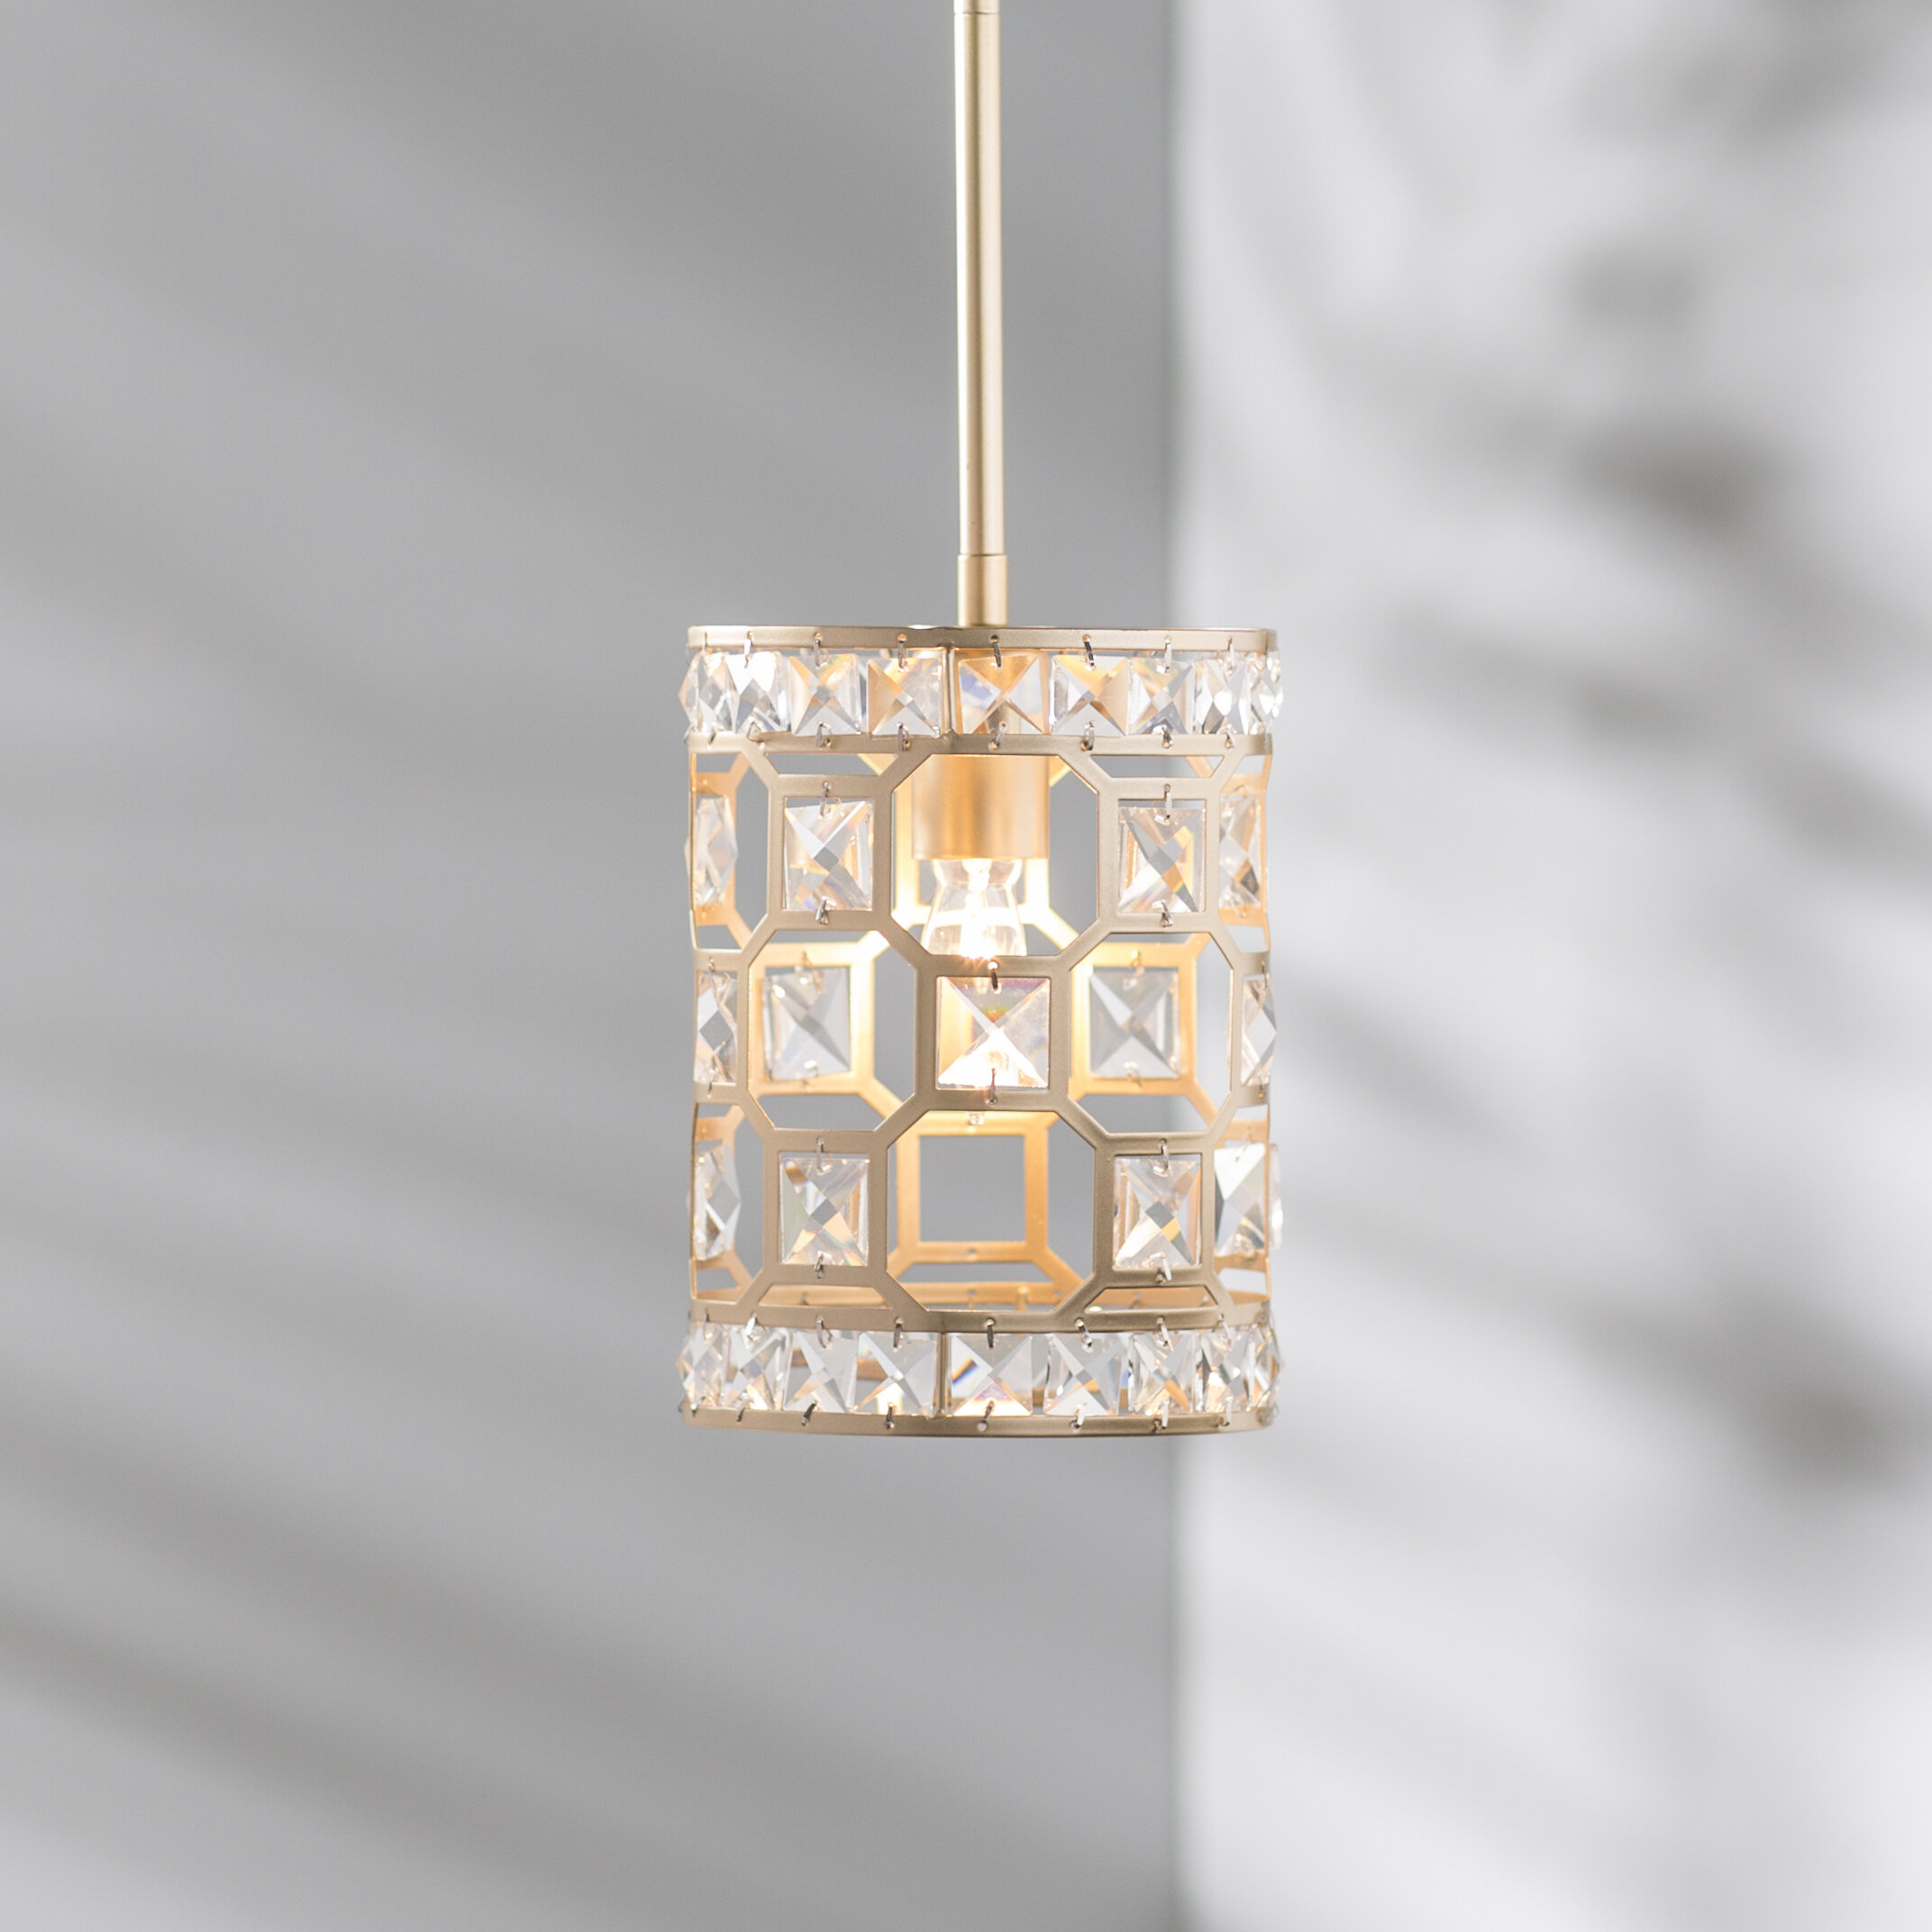 lighting ceiling all p bhs basket light semi estelle flush lights crystal fitting